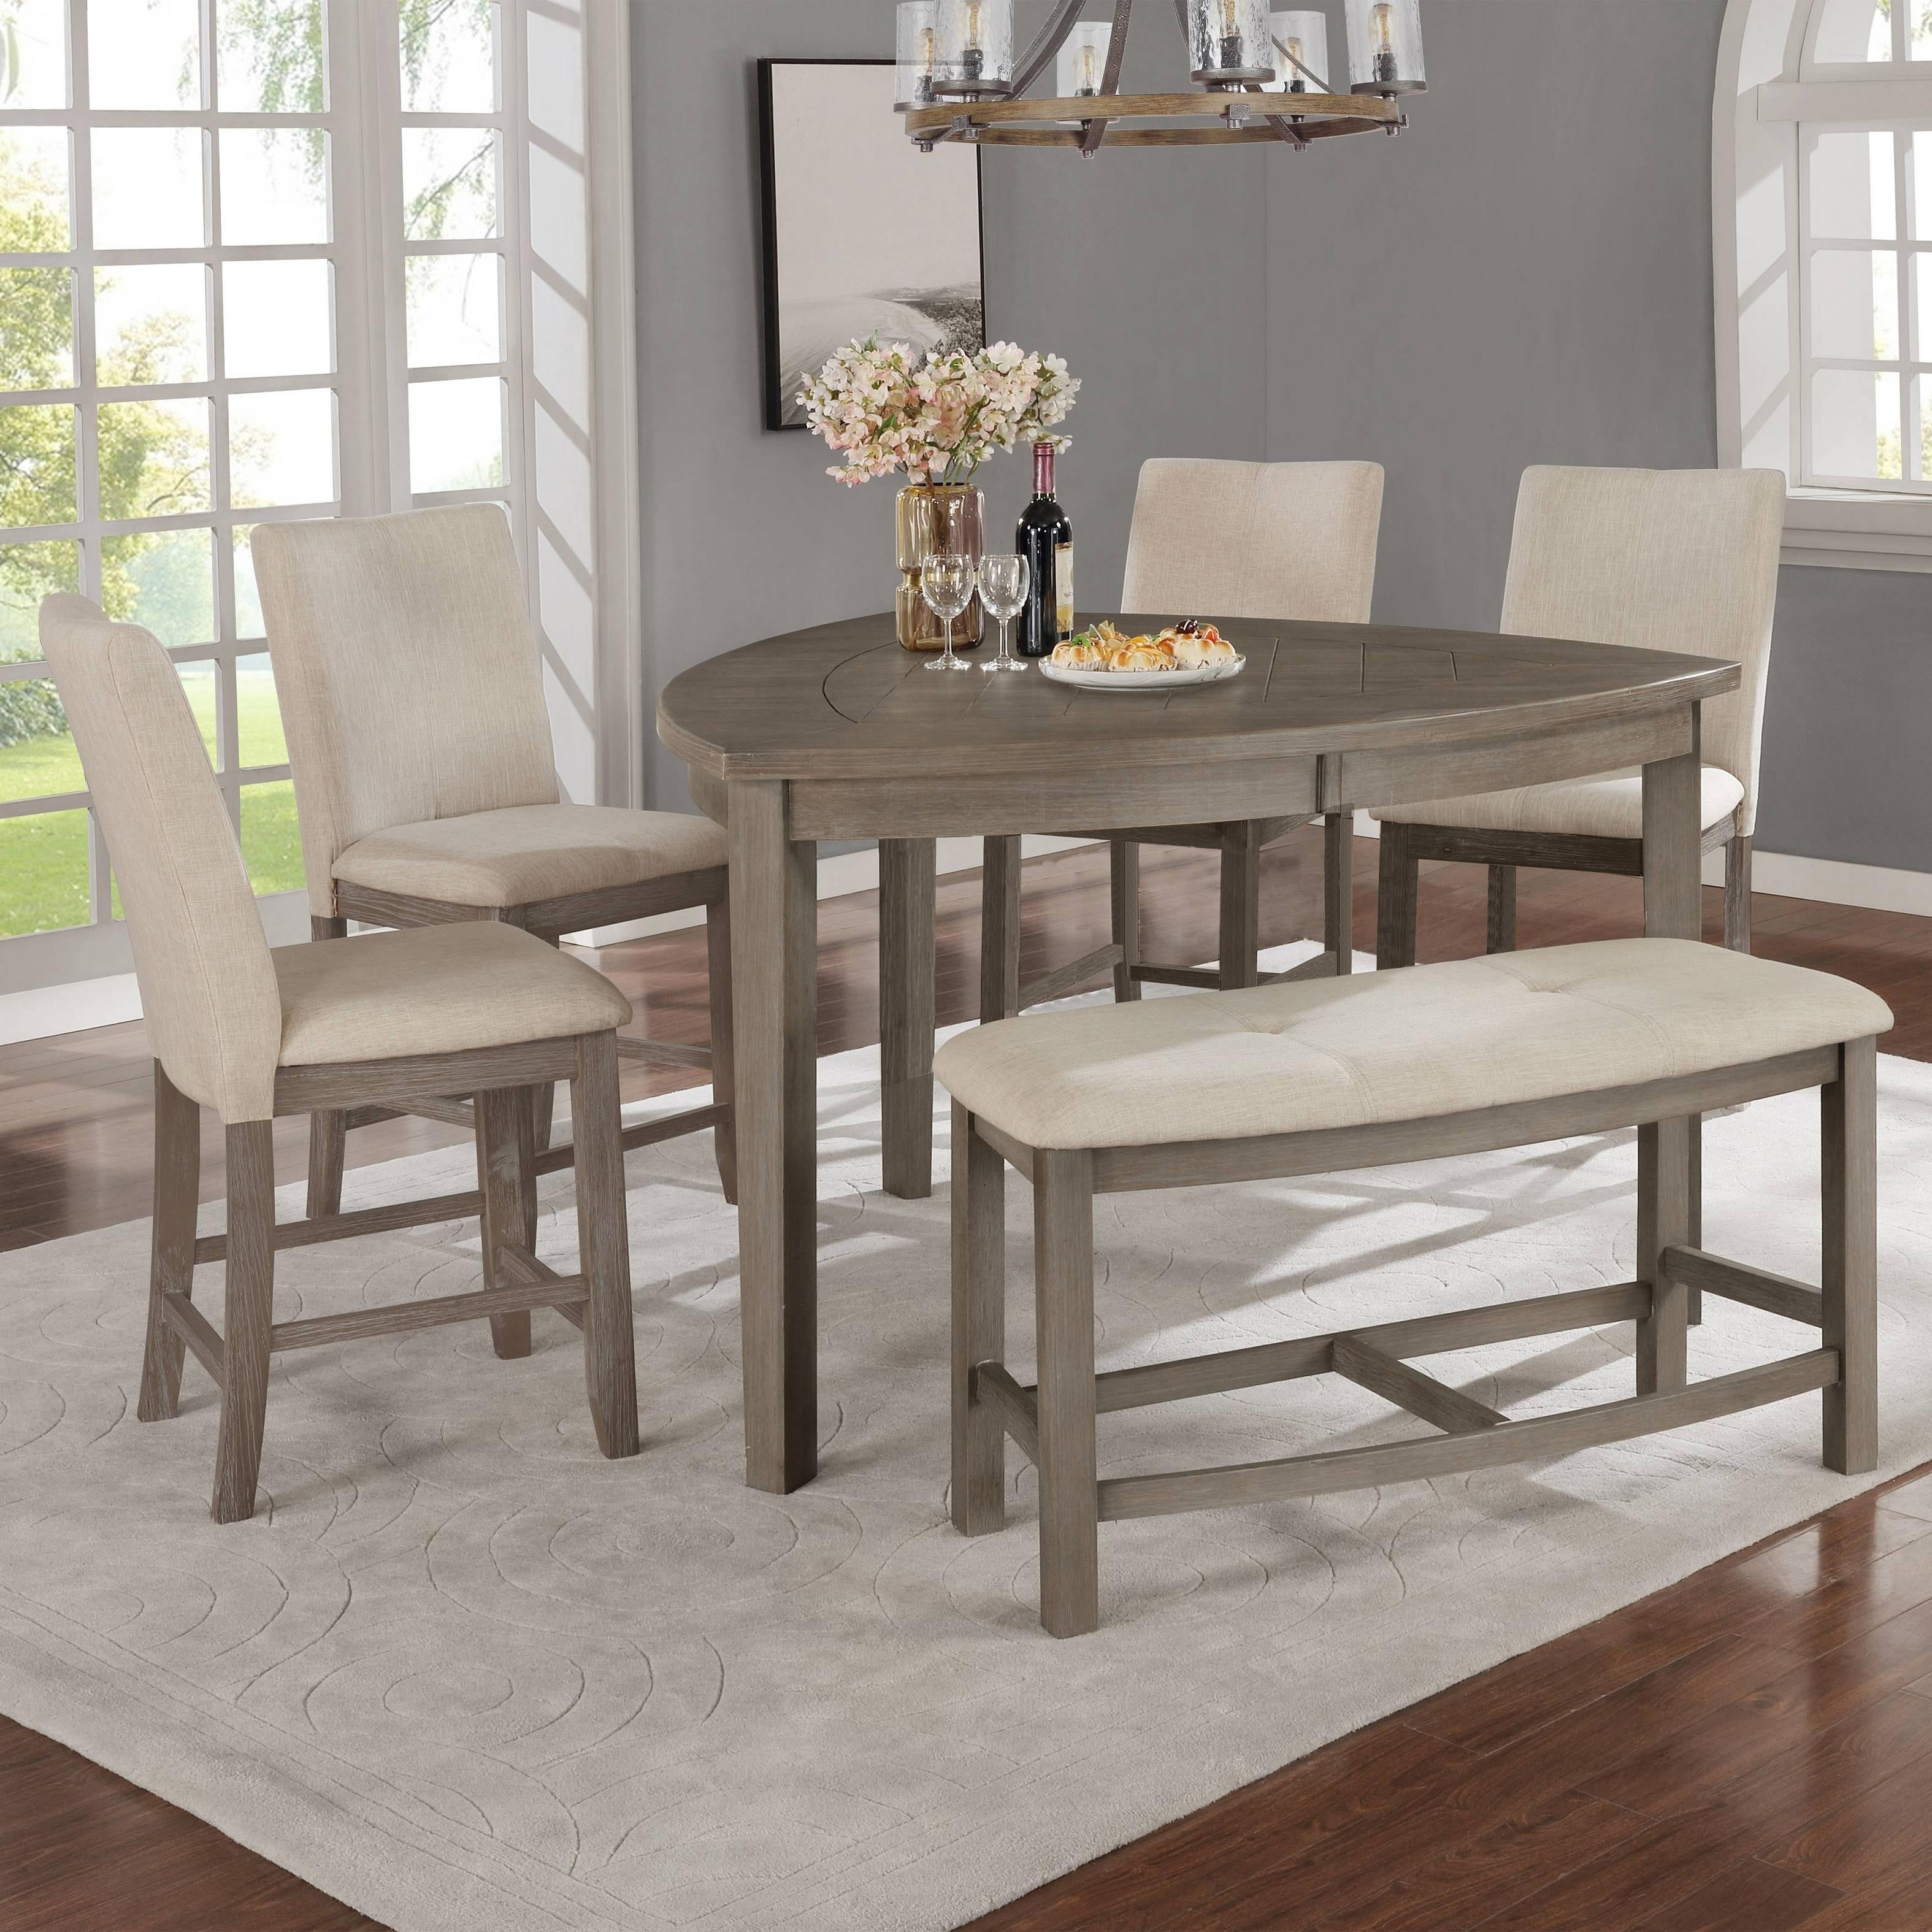 Best Quality Furniture 6 Piece Counter Height Dining Set With Upholstered Counter Height Dining Chairs And Bench On Sale Overstock 30893908